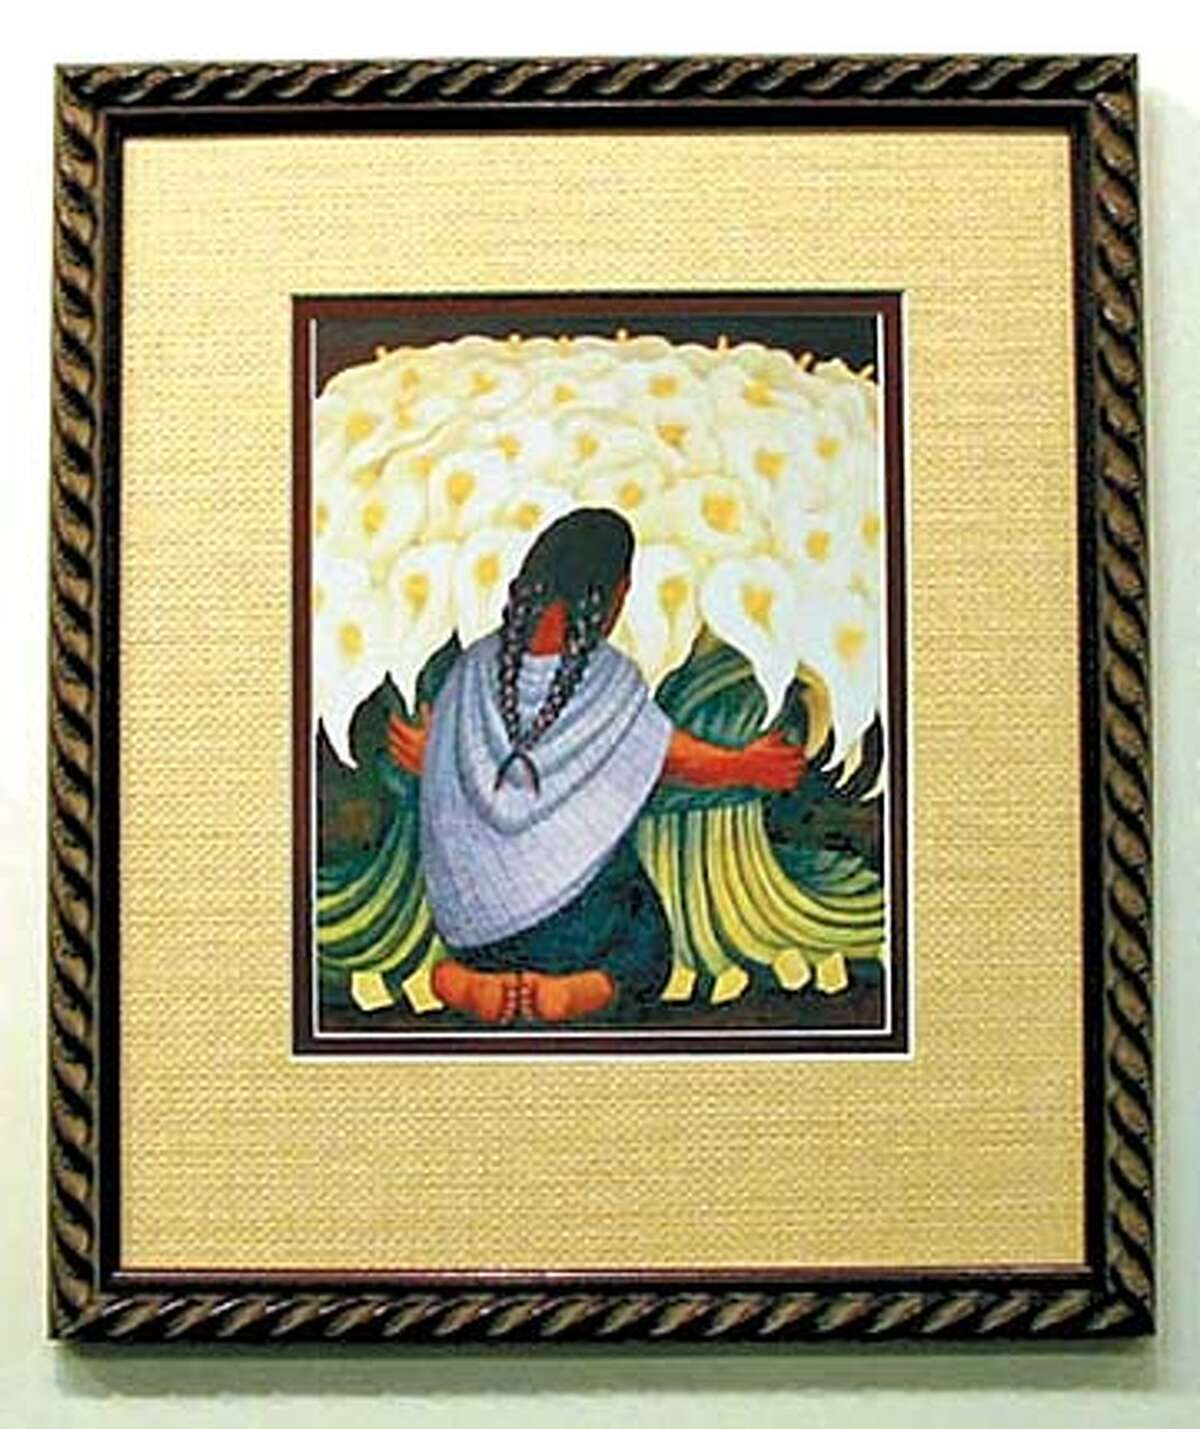 HOTSTUFF26-C-13MAR03-HM-HO --- The Diego Rivera is a $4. print which Stan brought in to frame. We have carried these in the store and plan to have them again within a couple of weeks. We have many small pieces like this on our gallery walls. Items on t